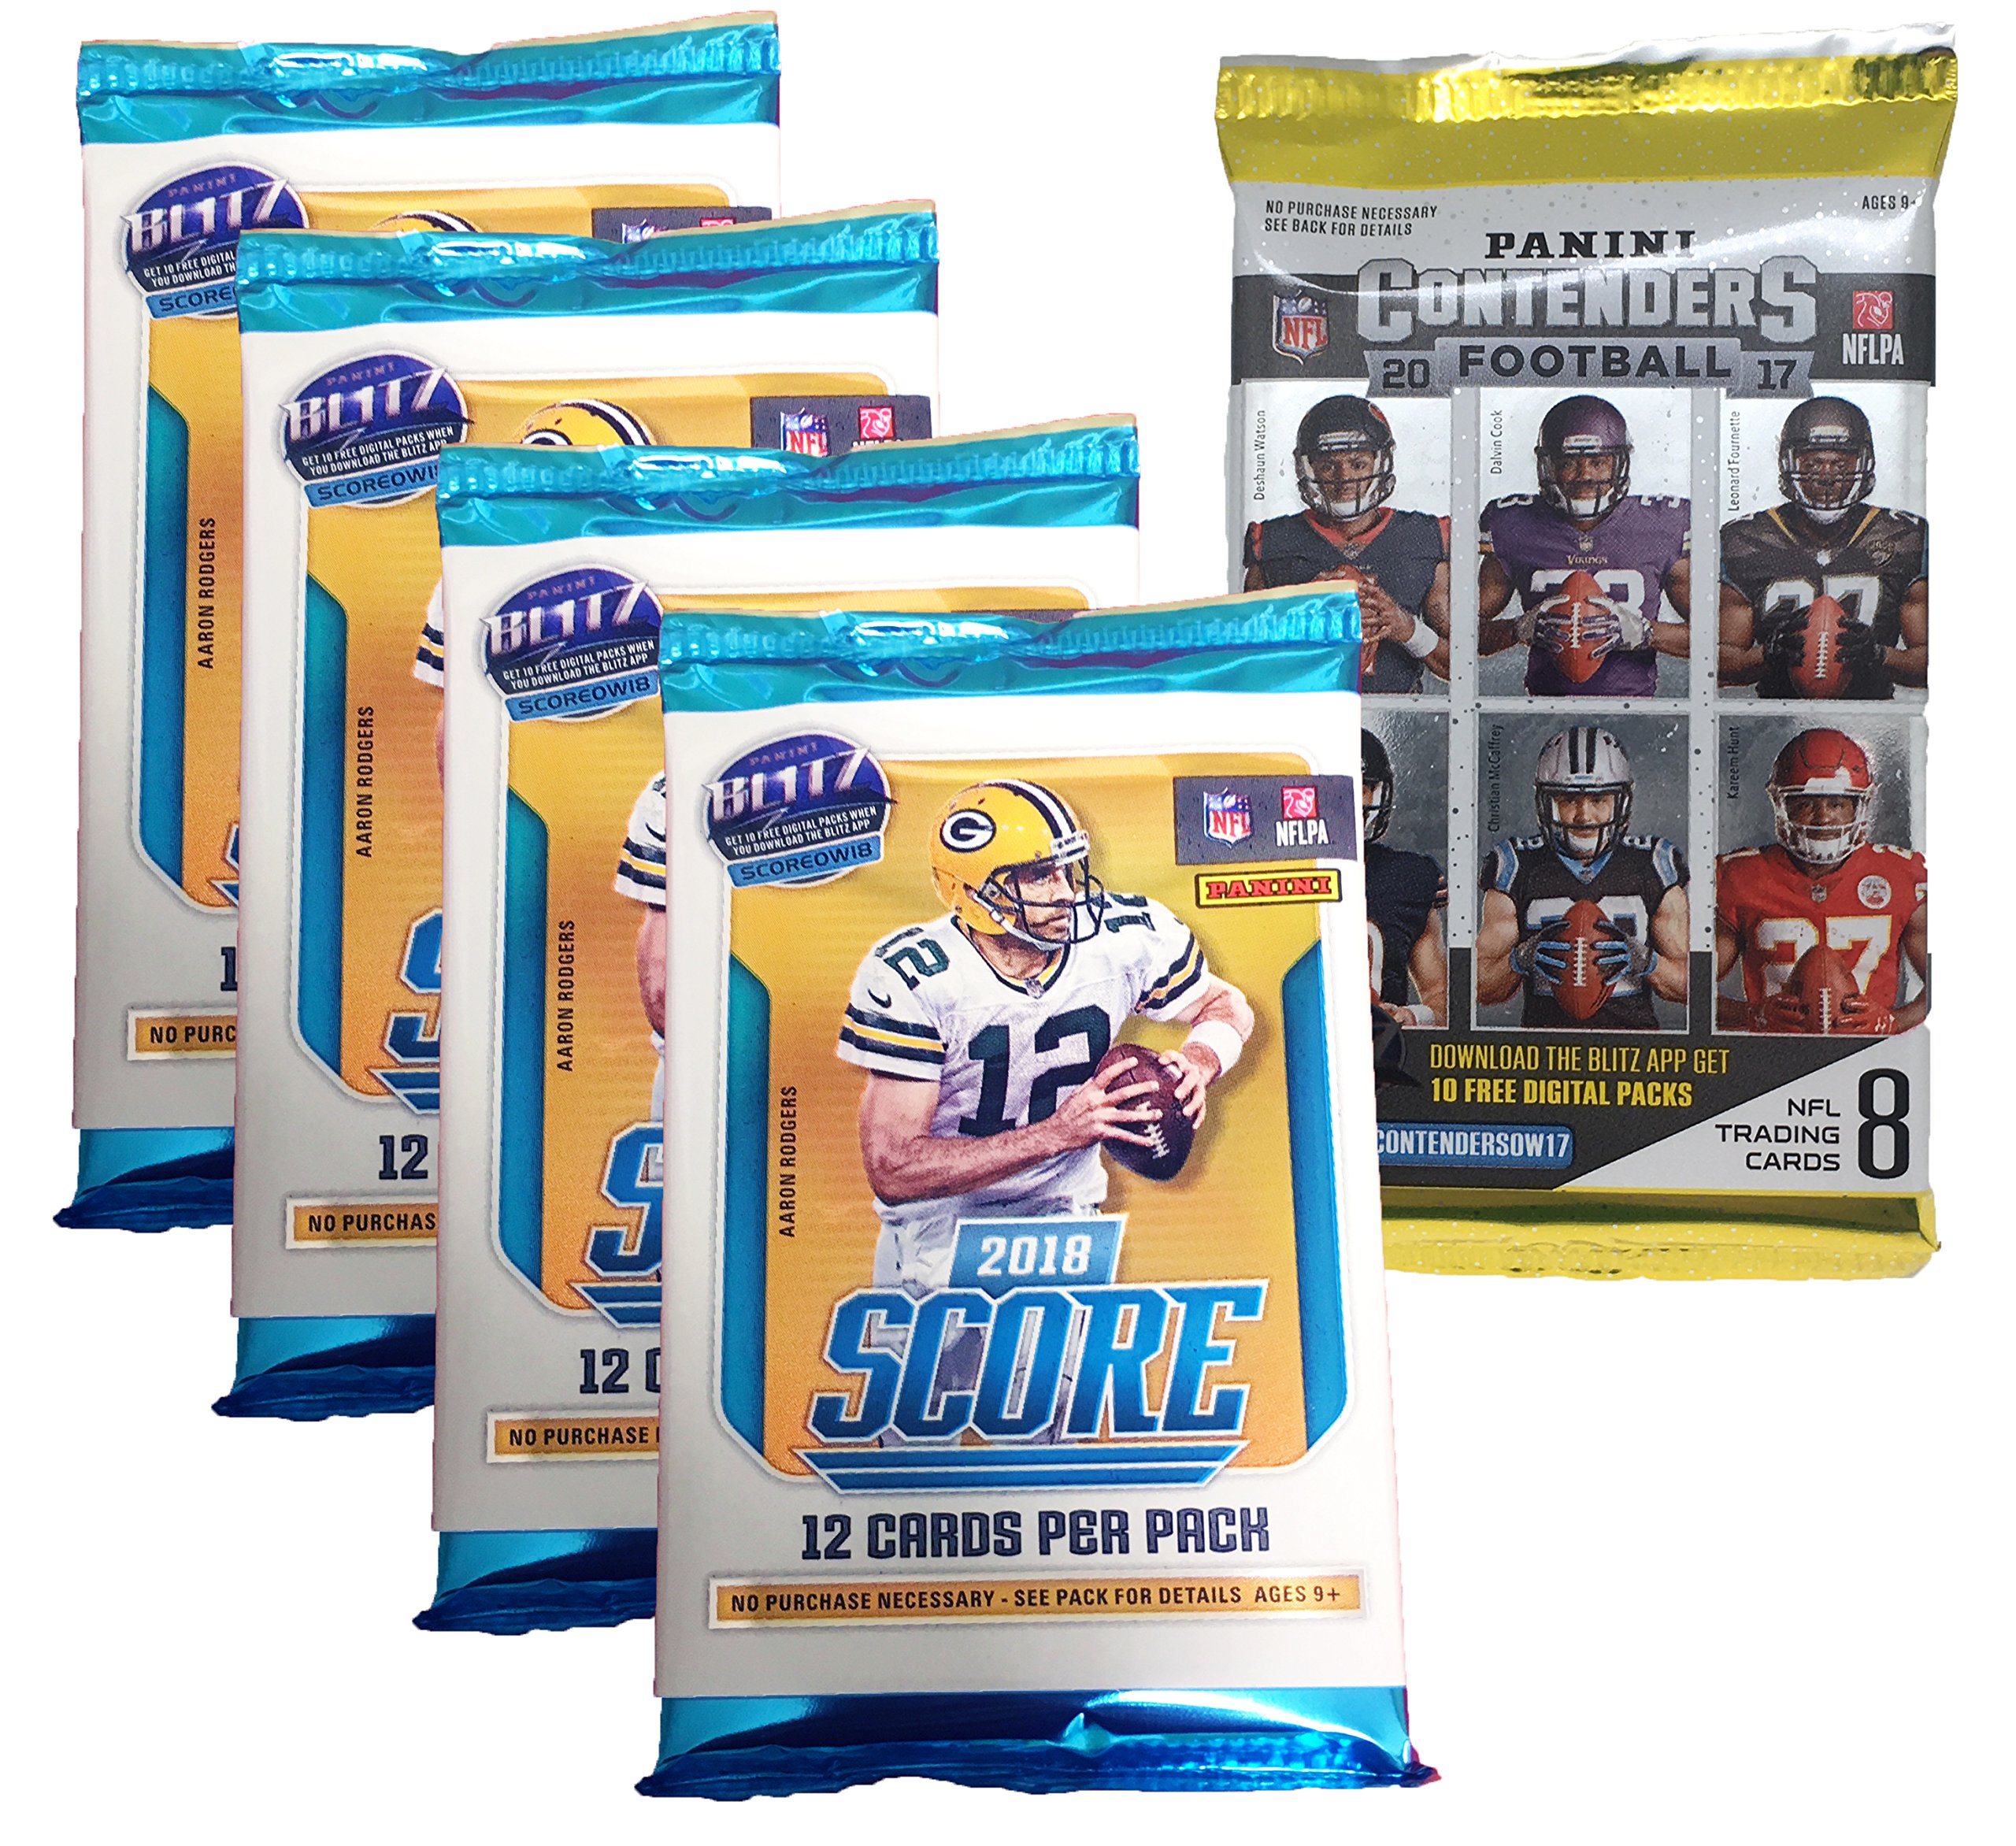 Panini 2018 2019 Score NFL Football Trading Cards Retail Factory Sealed 4 Packs + Bonus Pack